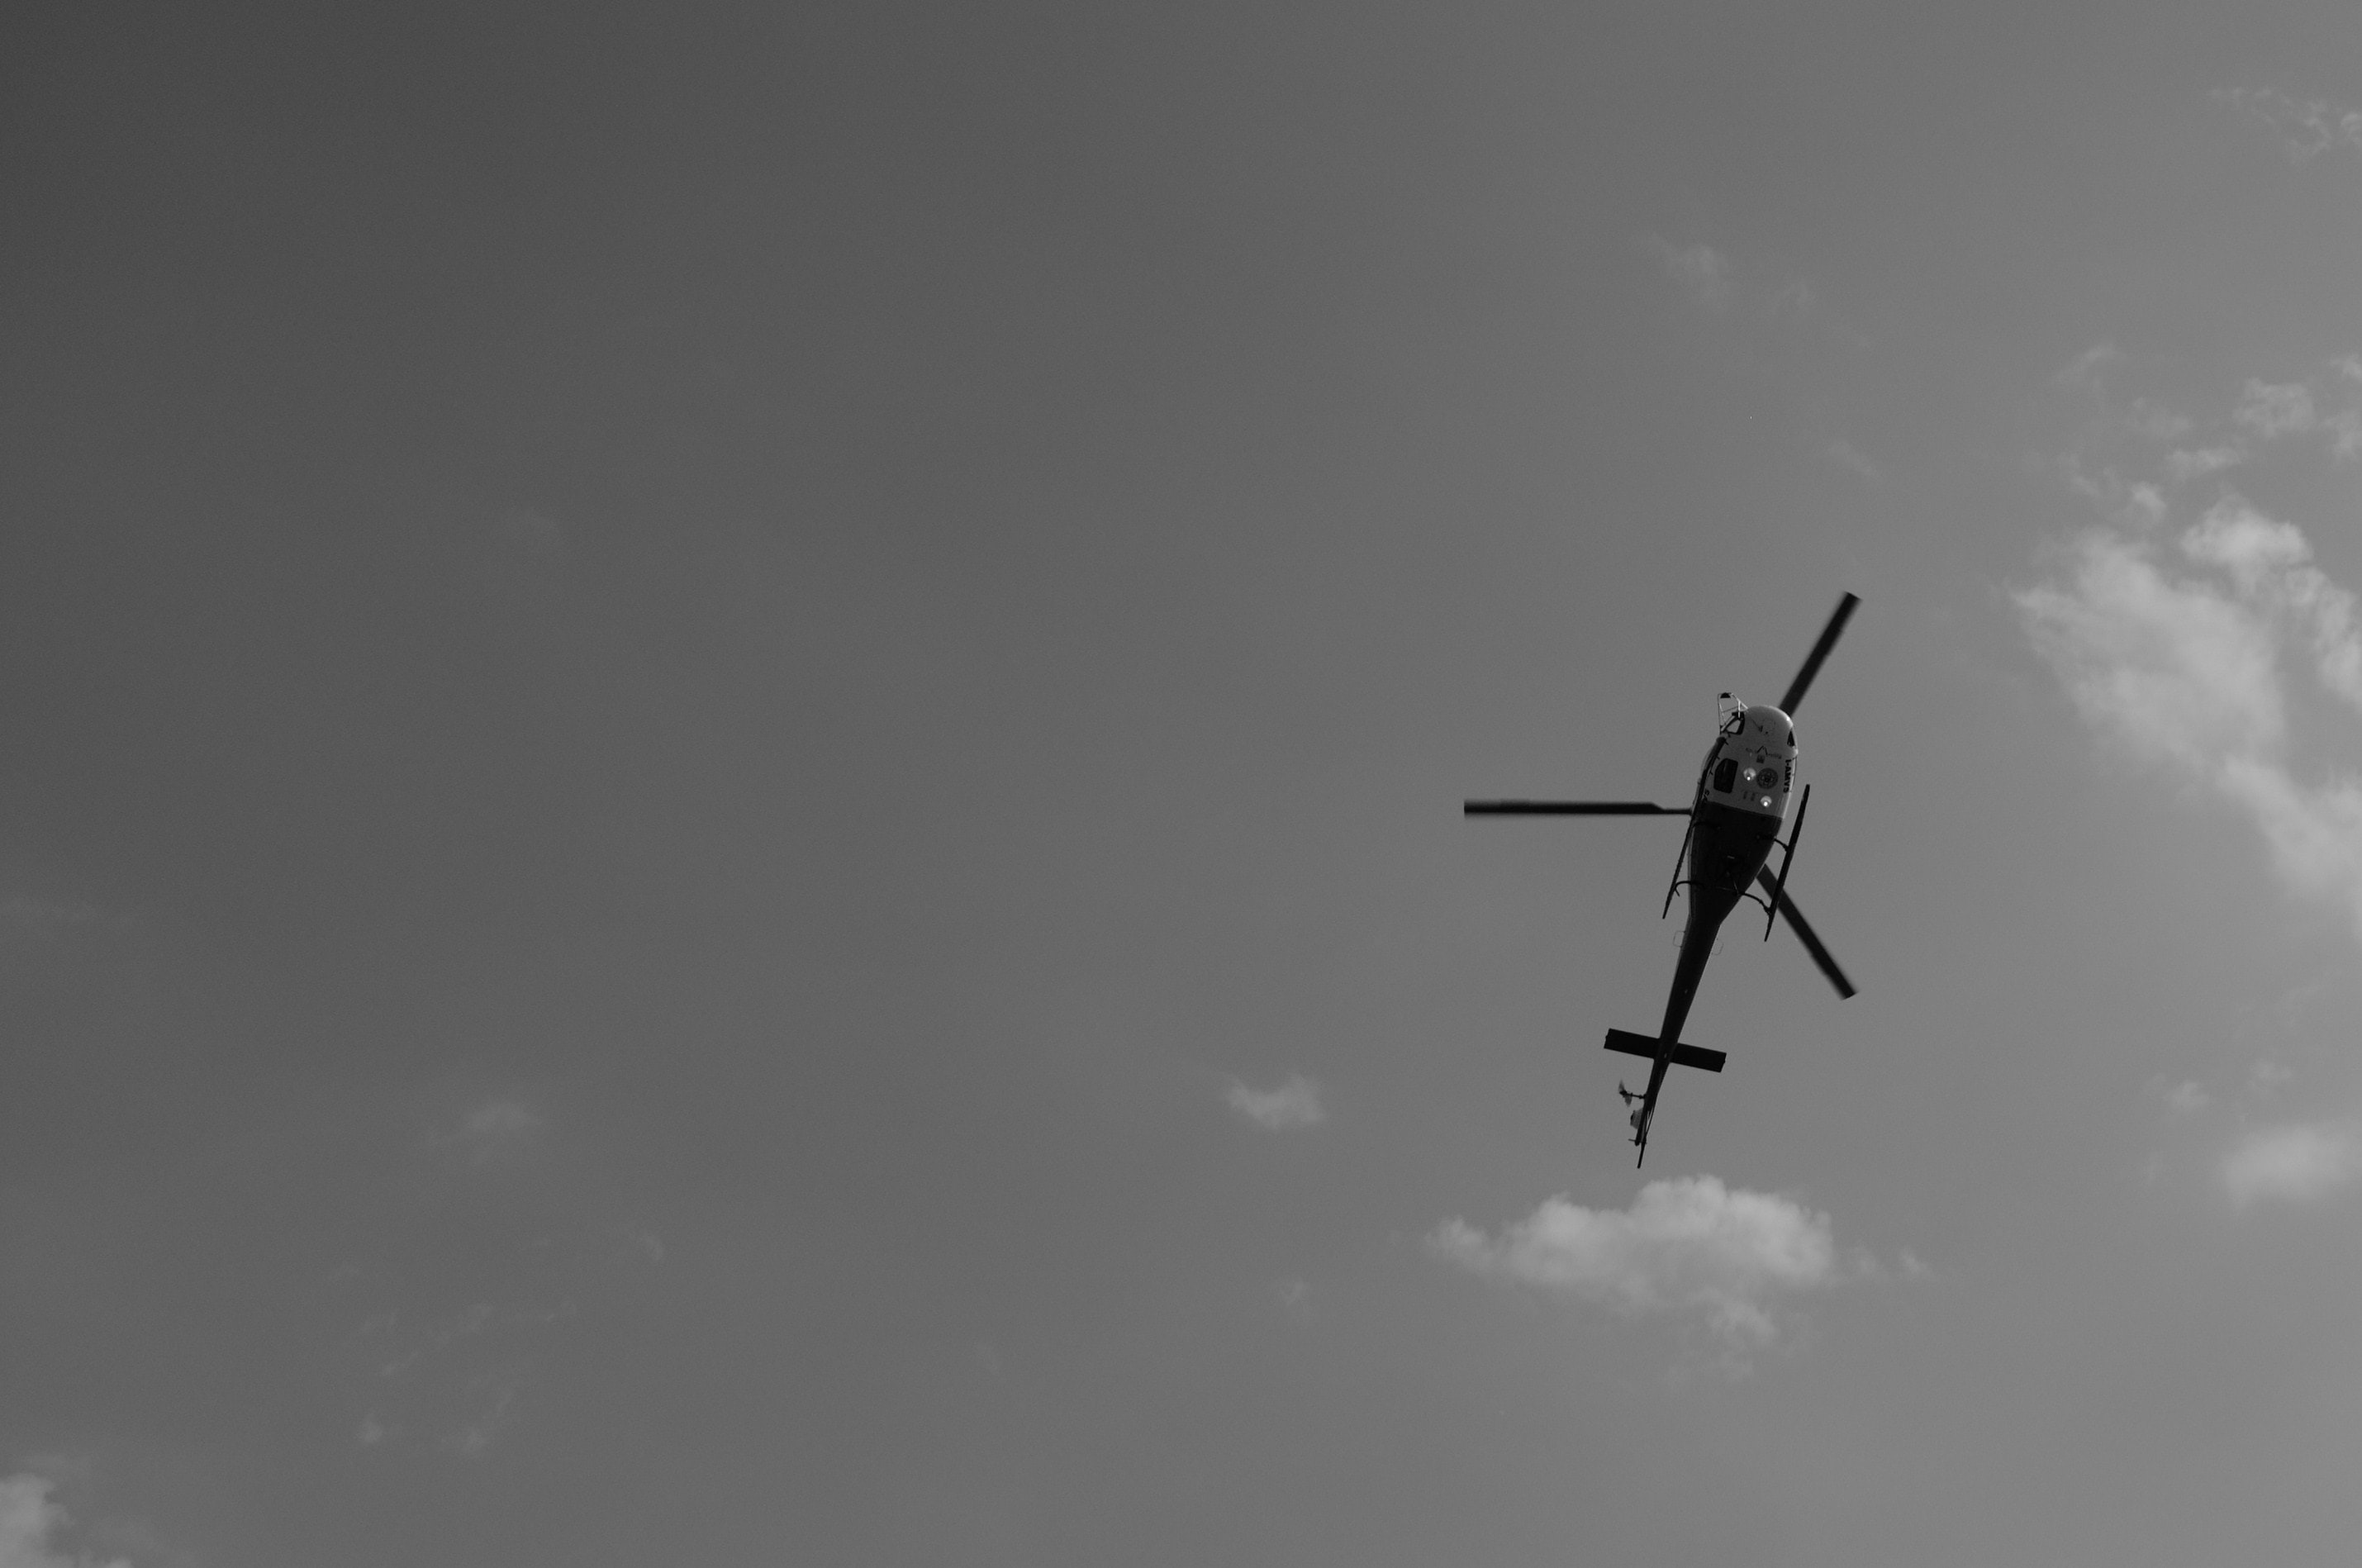 Black and white photo of a helicopter flying overhead.